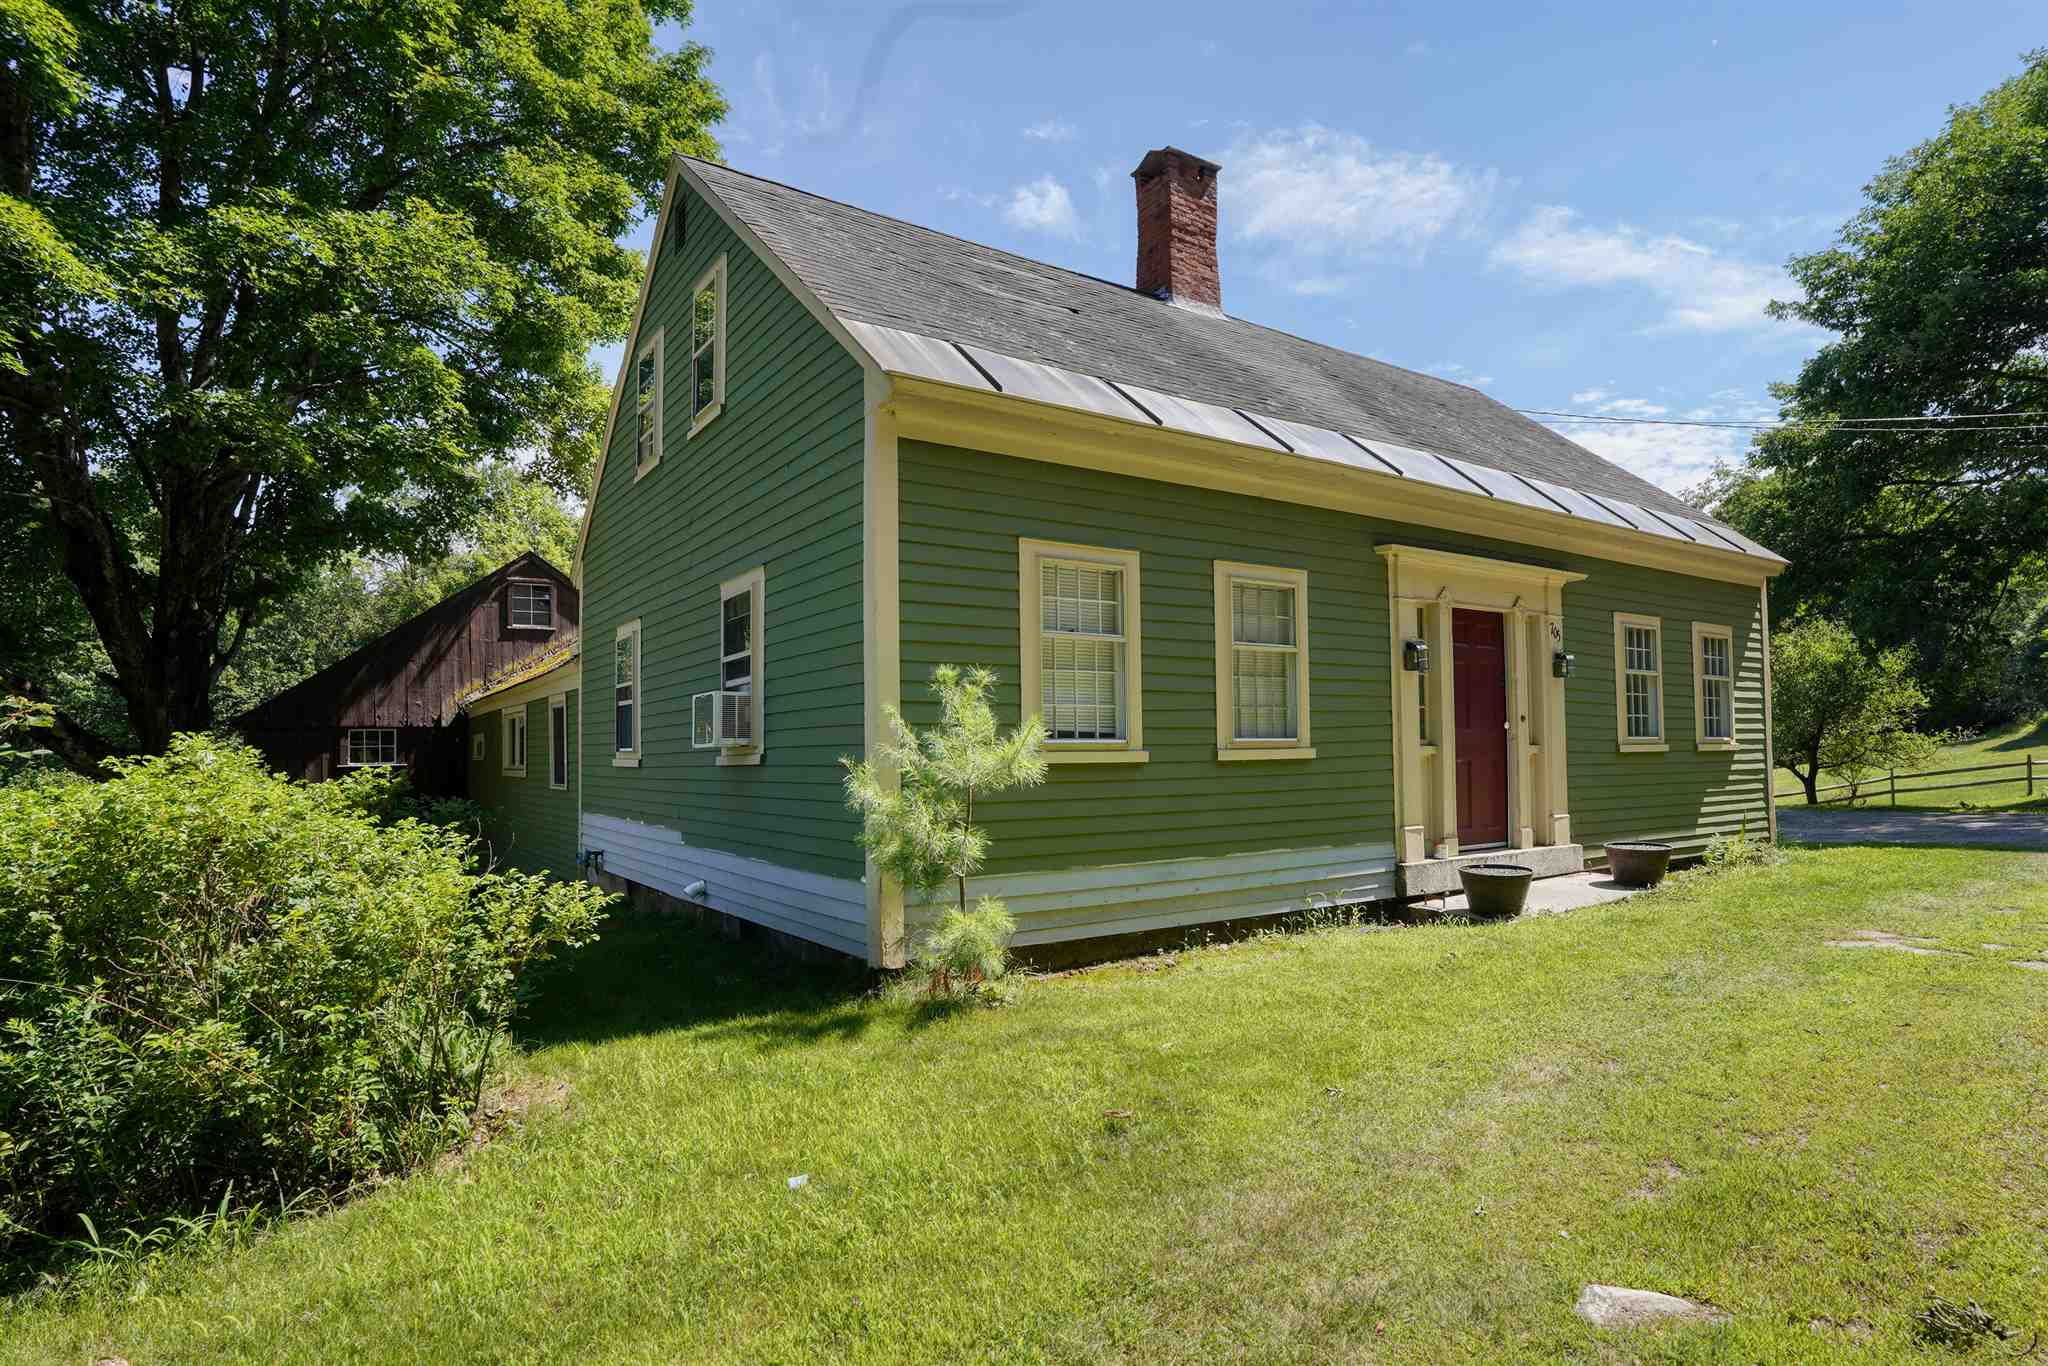 MLS 4821611: 705 NH Route 119 W, Fitzwilliam NH